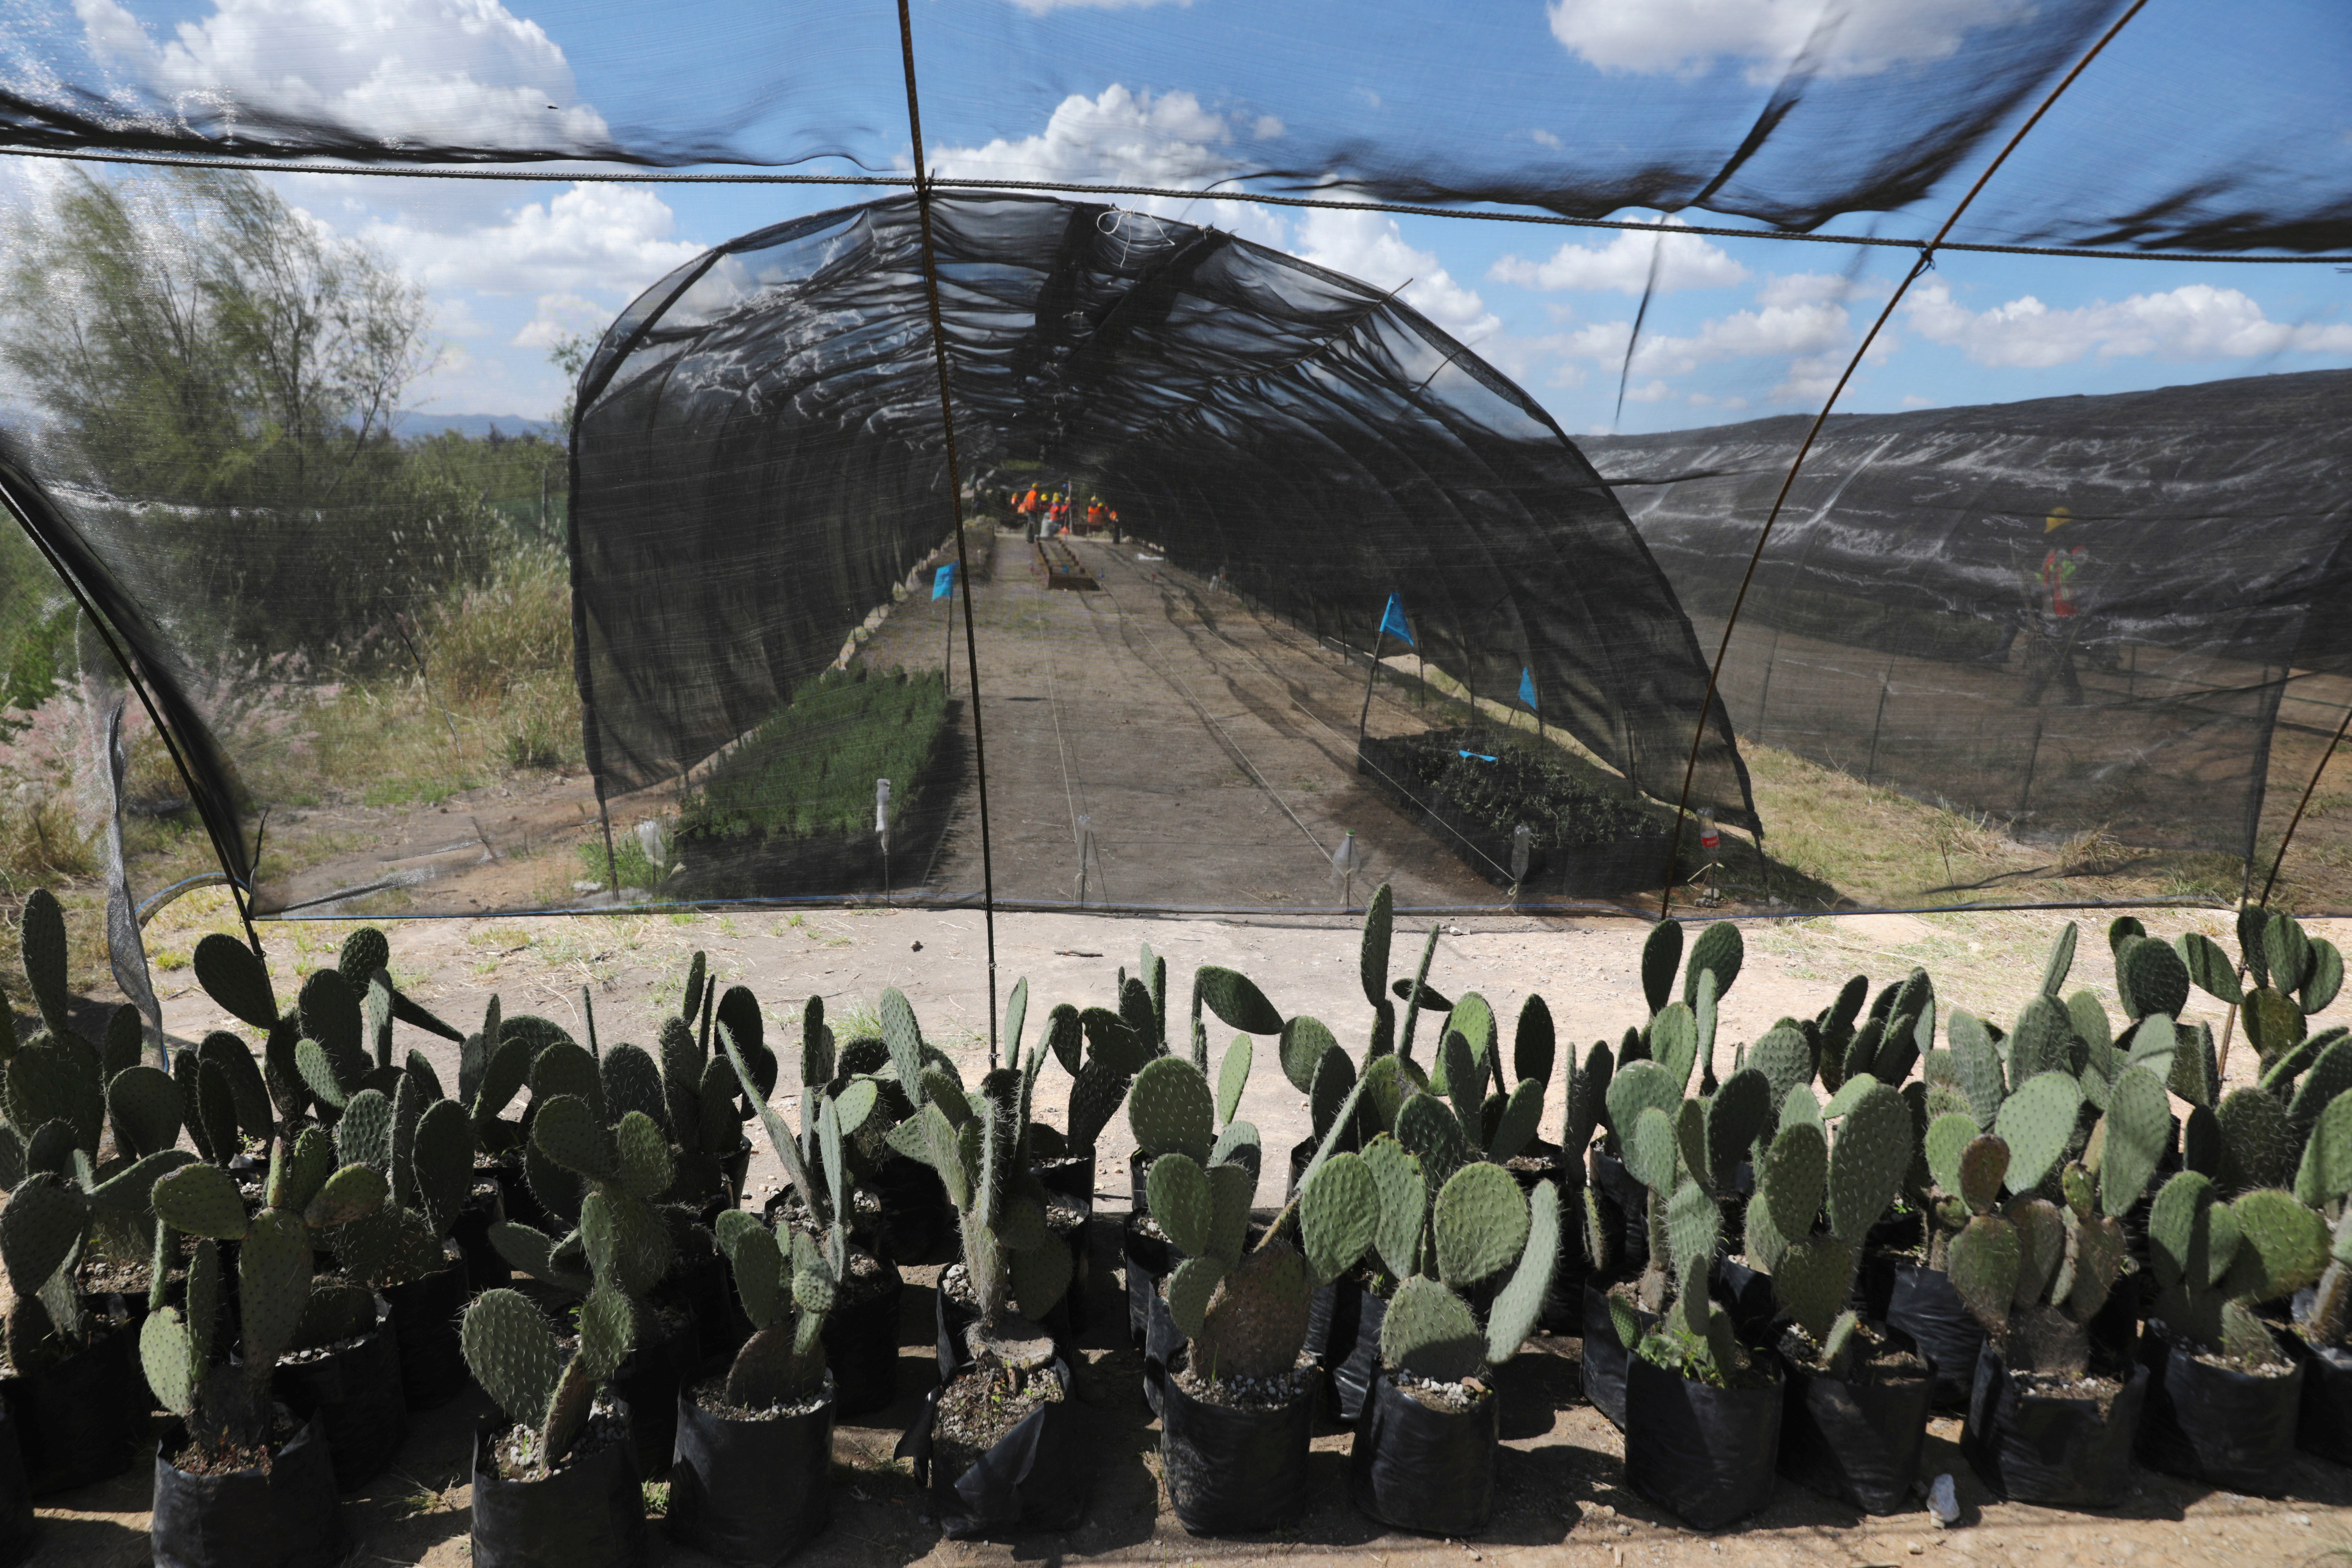 Workers prepare plants in an area near the canceled airport zone that is part of a project to conserve 12,200 hectares of land in Texcoco on the outskirts of Mexico City, Mexico September 3, 2020. Picture taken September 3, 2020. REUTERS/Henry Romero - RC2VTI98YDRK